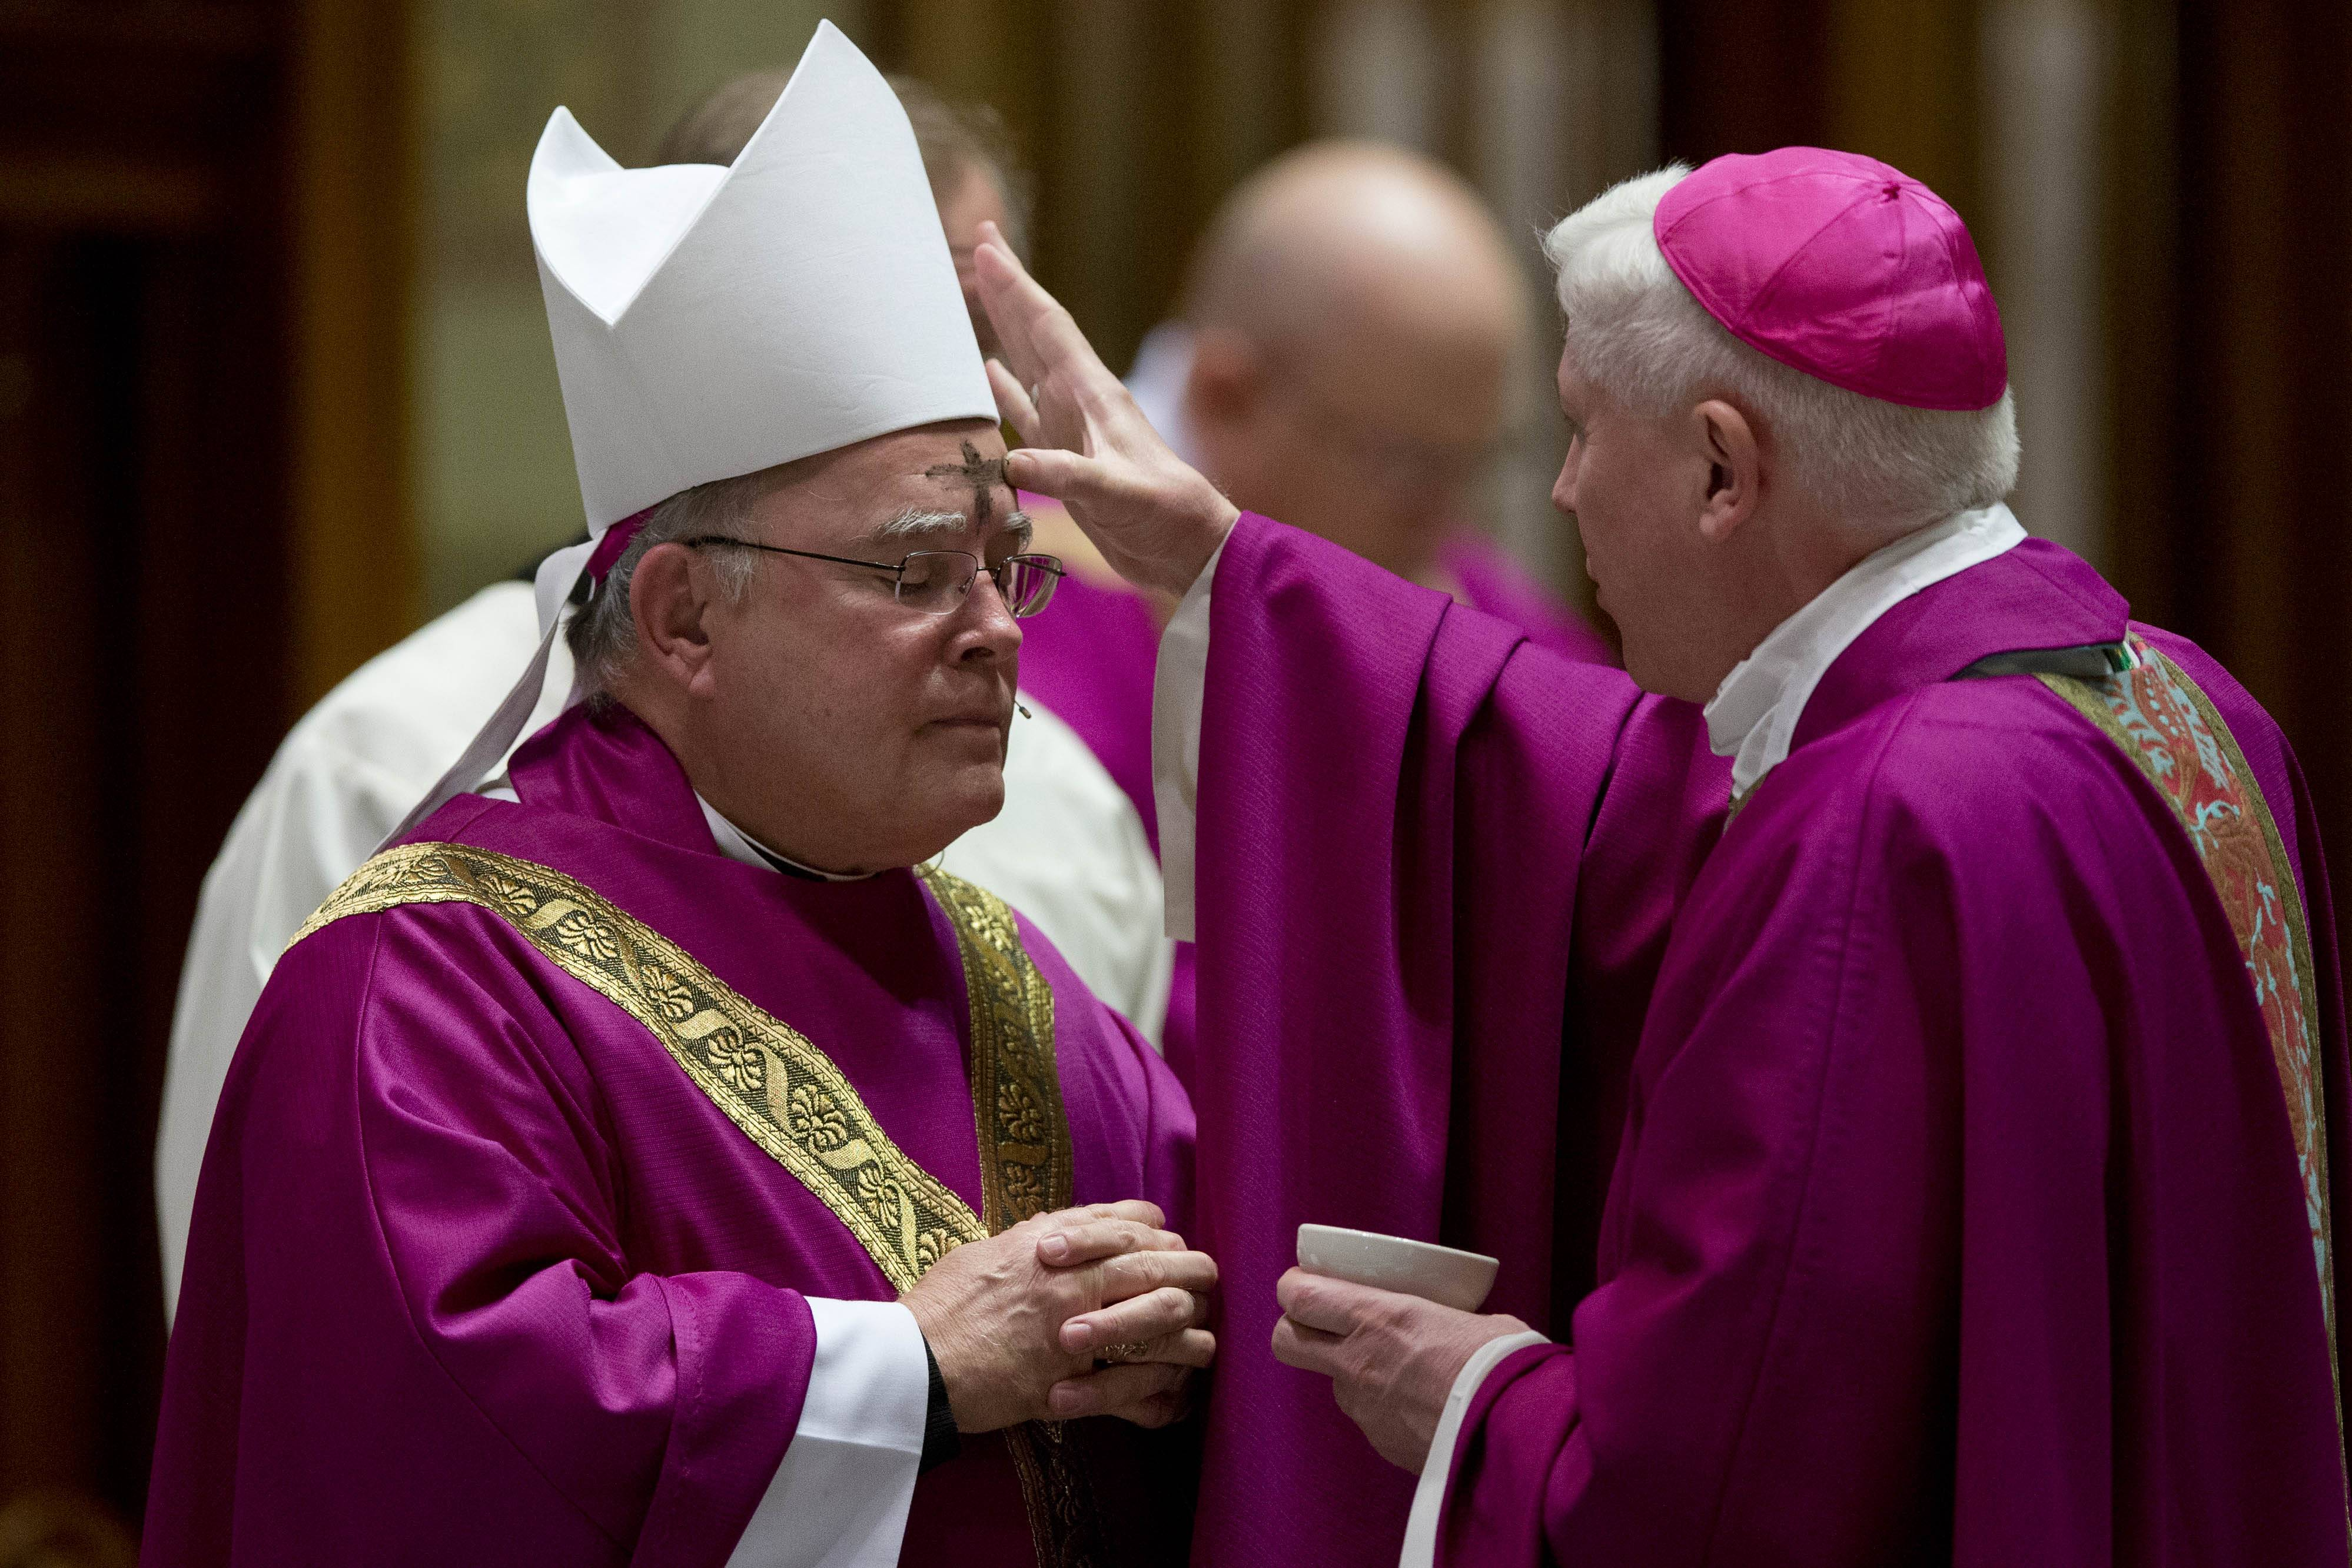 Archbishop of Philadelphia Charles Chaput has ash on a placed on his forehead during an Ash Wednesday Mass at the Cathedral Basilica of Saints Peter and Paul in Philadelphia.